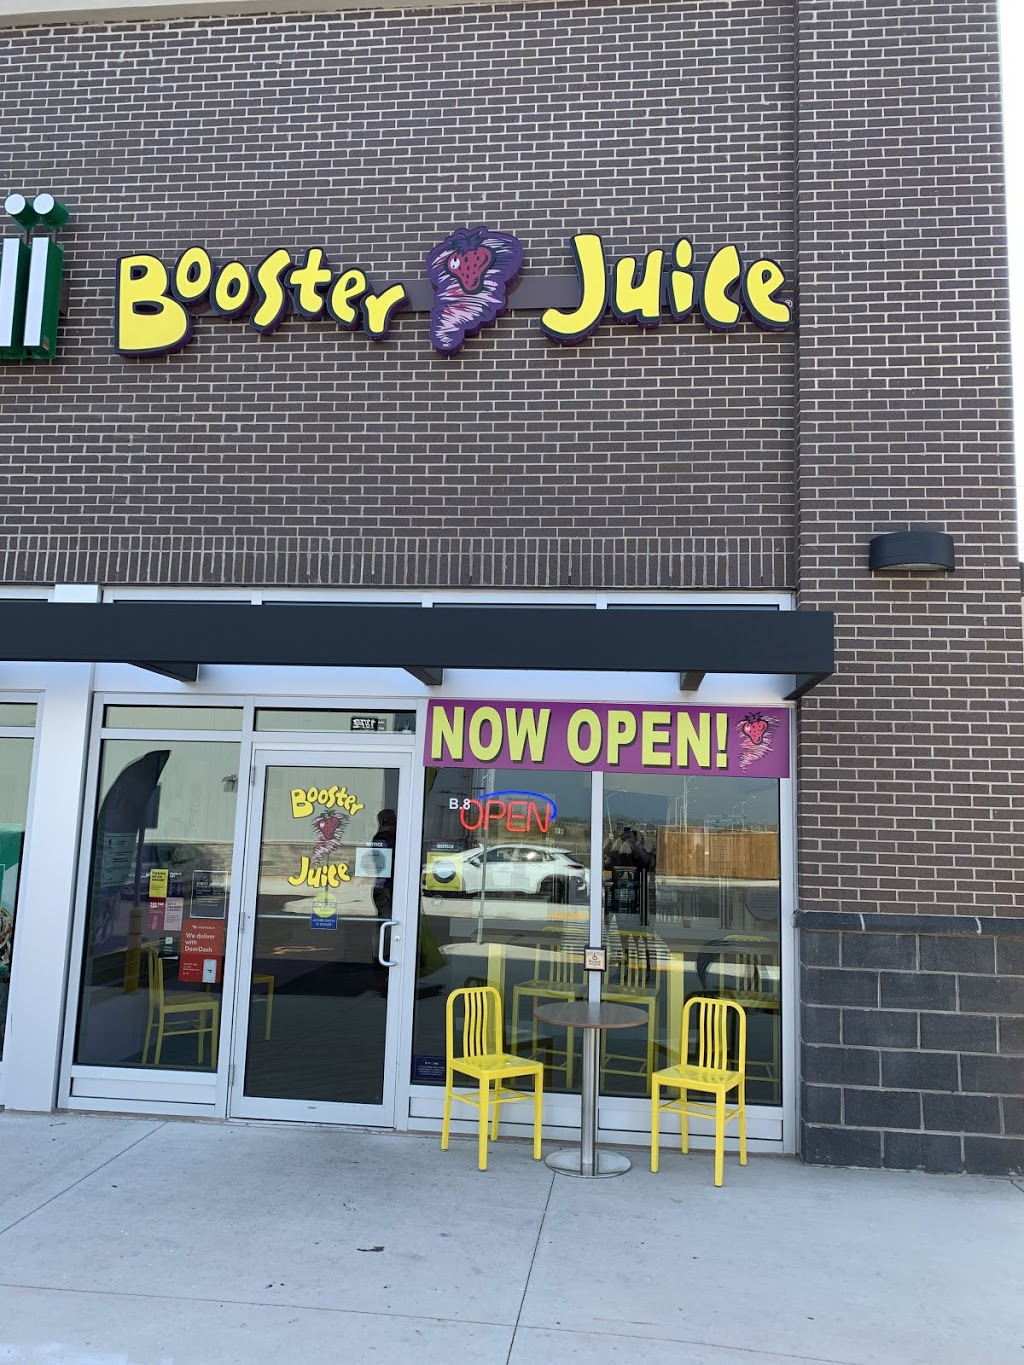 Booster Juice | meal delivery | 1374 S Service Rd Unit 8, Stoney Creek, ON L8E 5C5, Canada | 9056430208 OR +1 905-643-0208